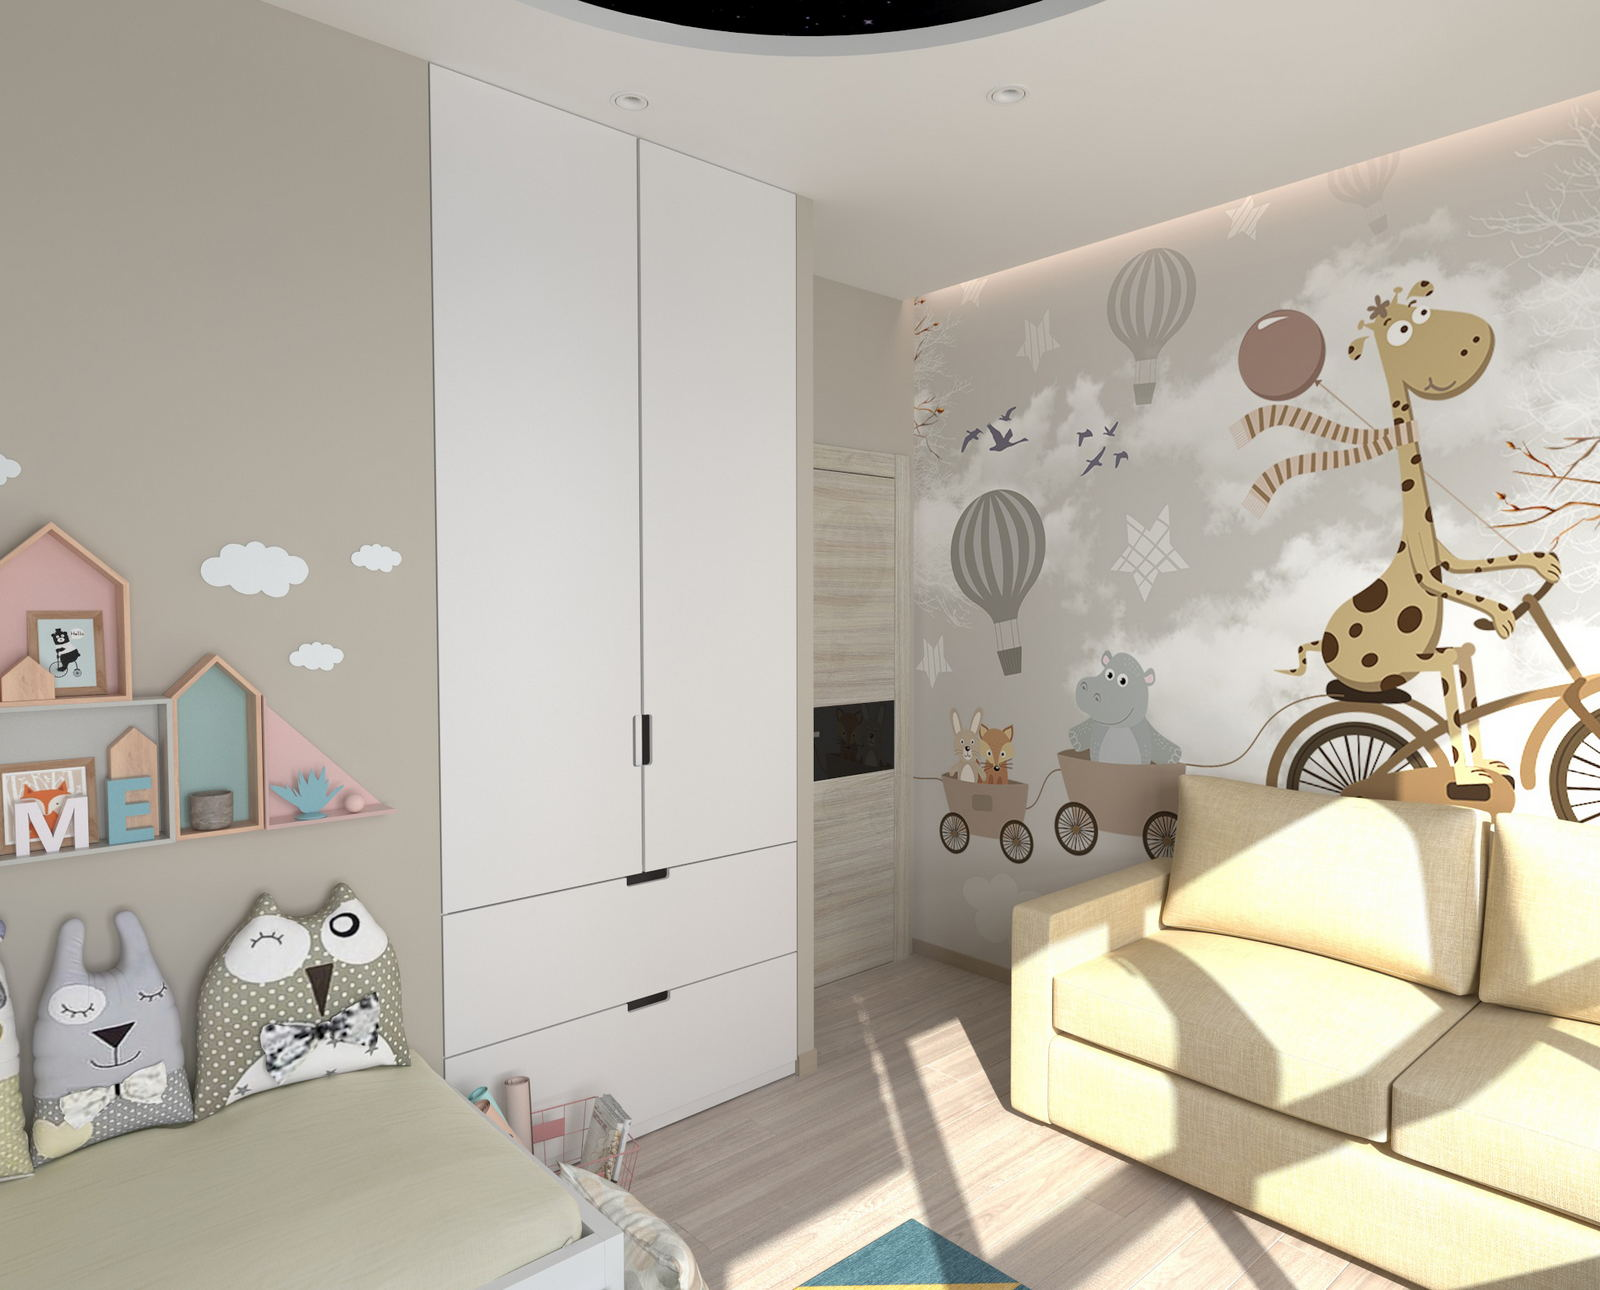 t_Kids_room_View_004.jpg